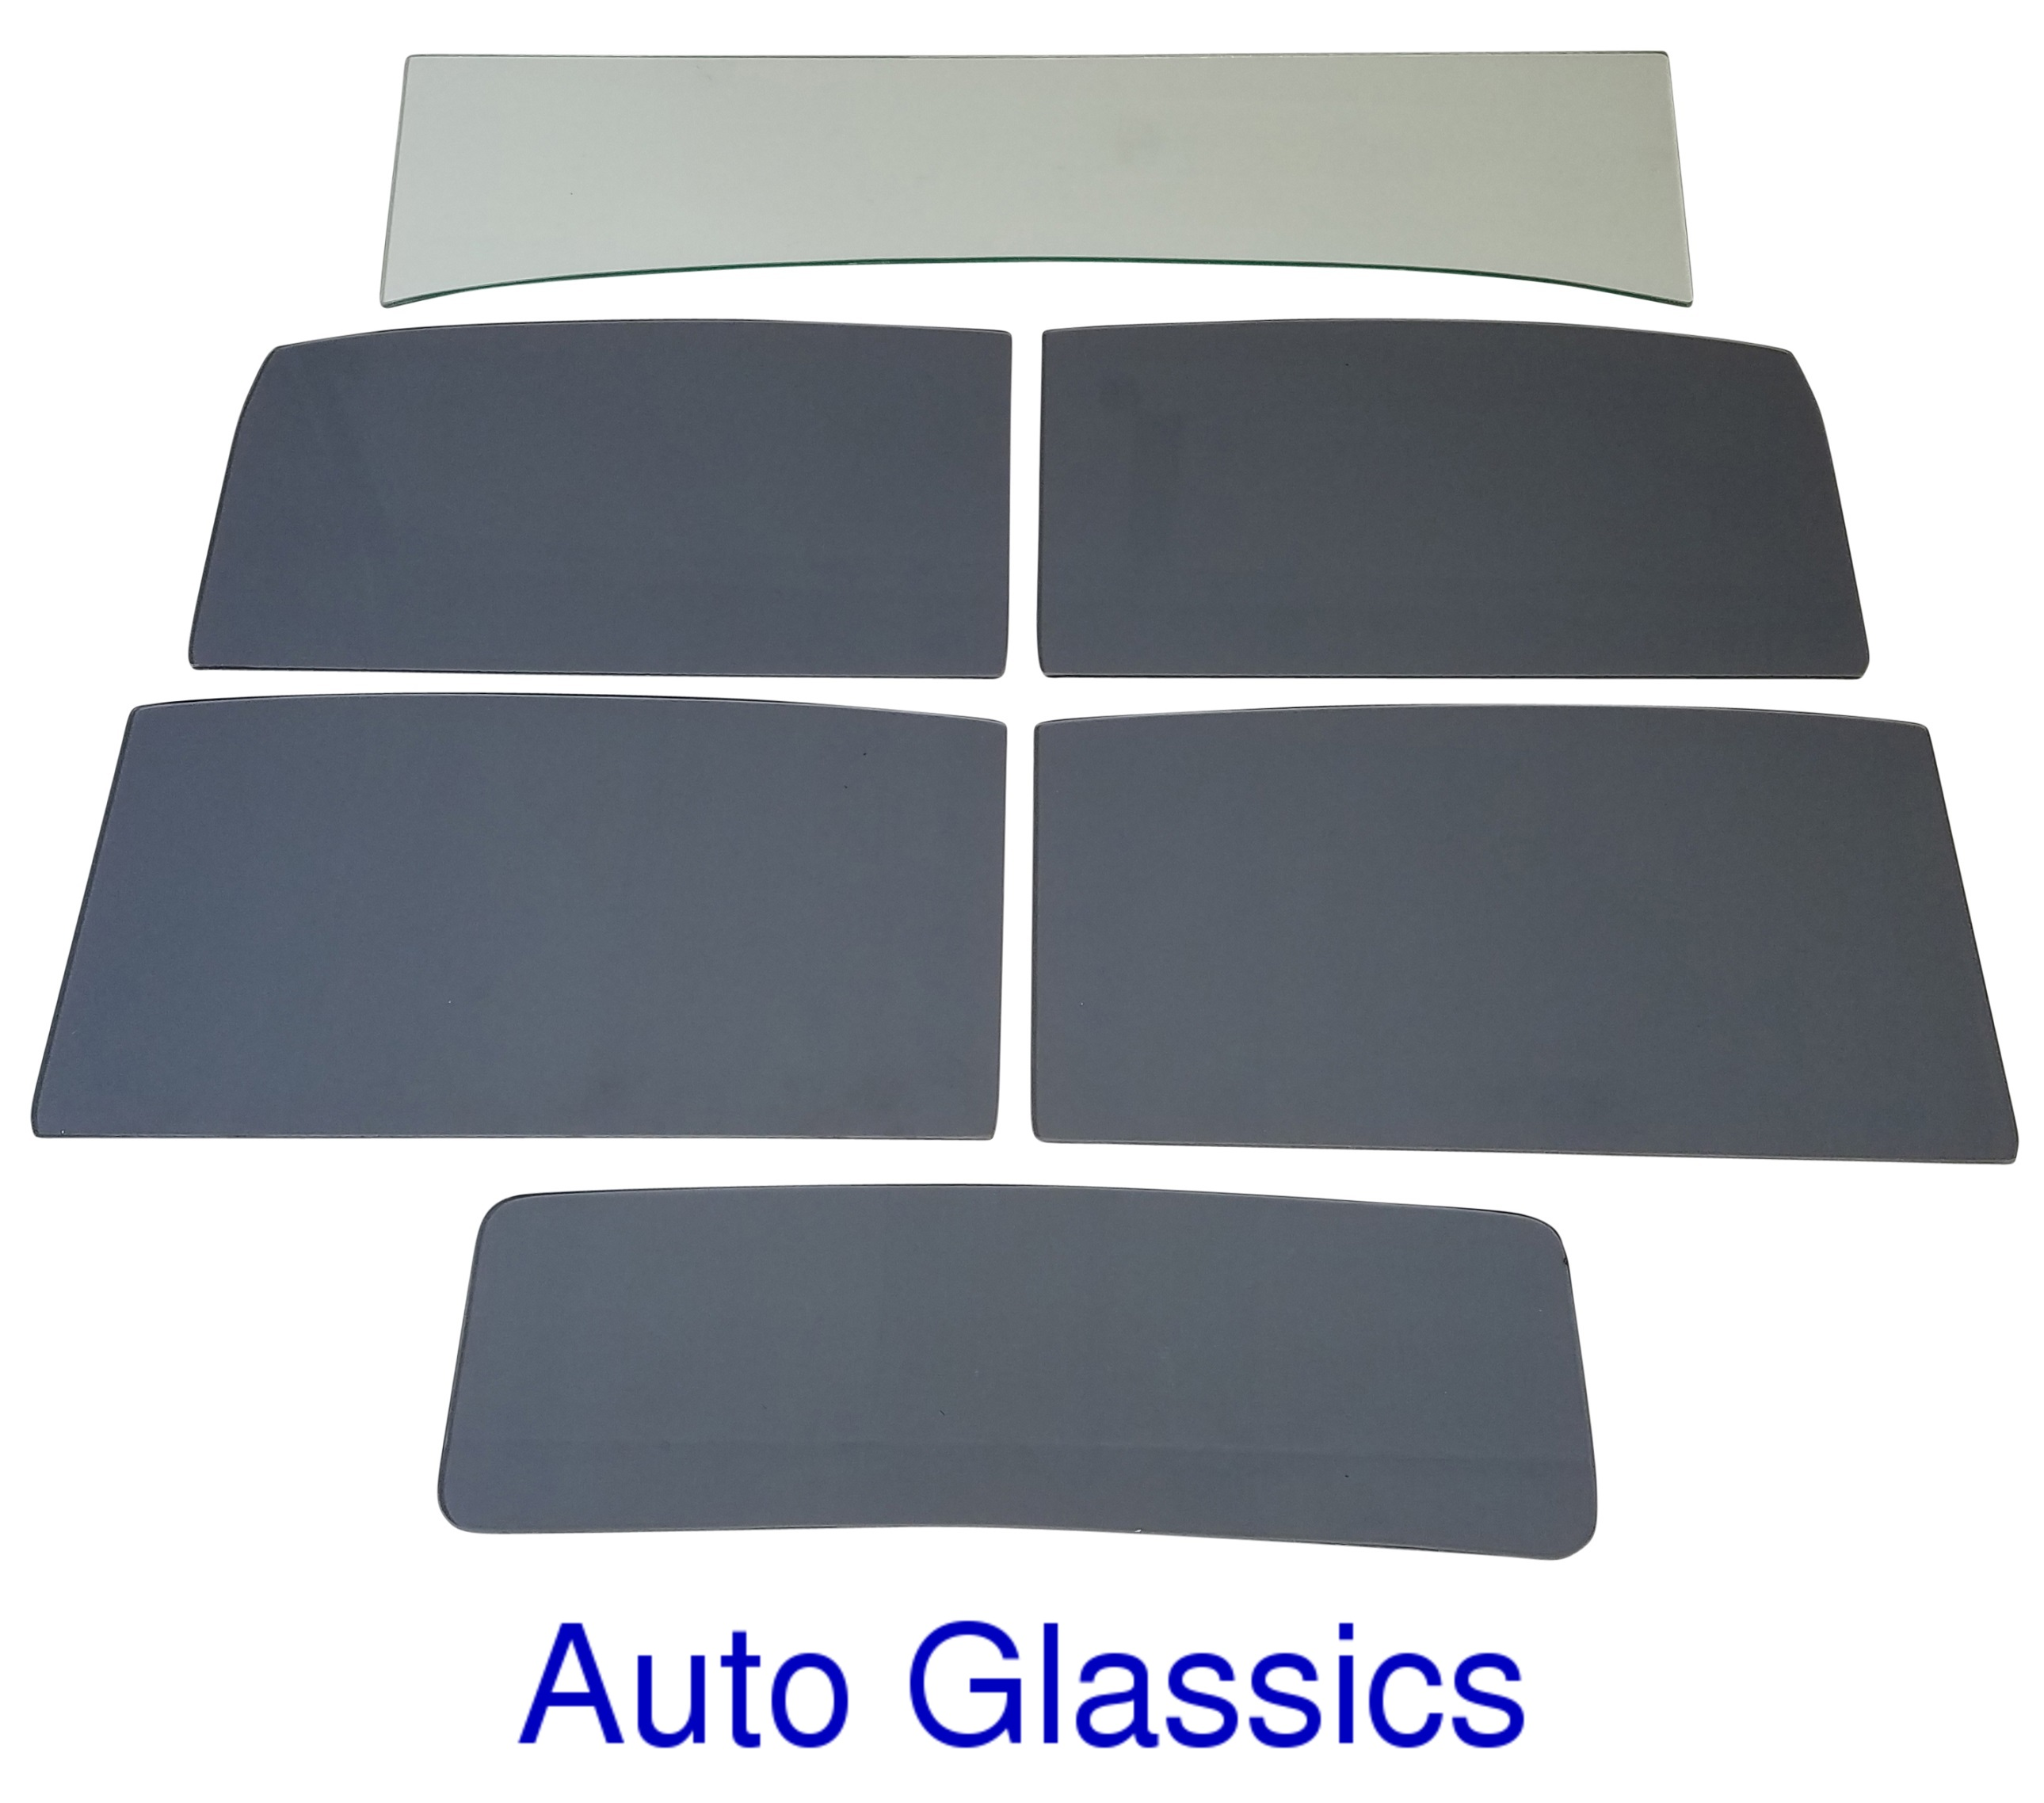 1932 Ford Model B/18 Tudor Sedan Auto Glass Kit To